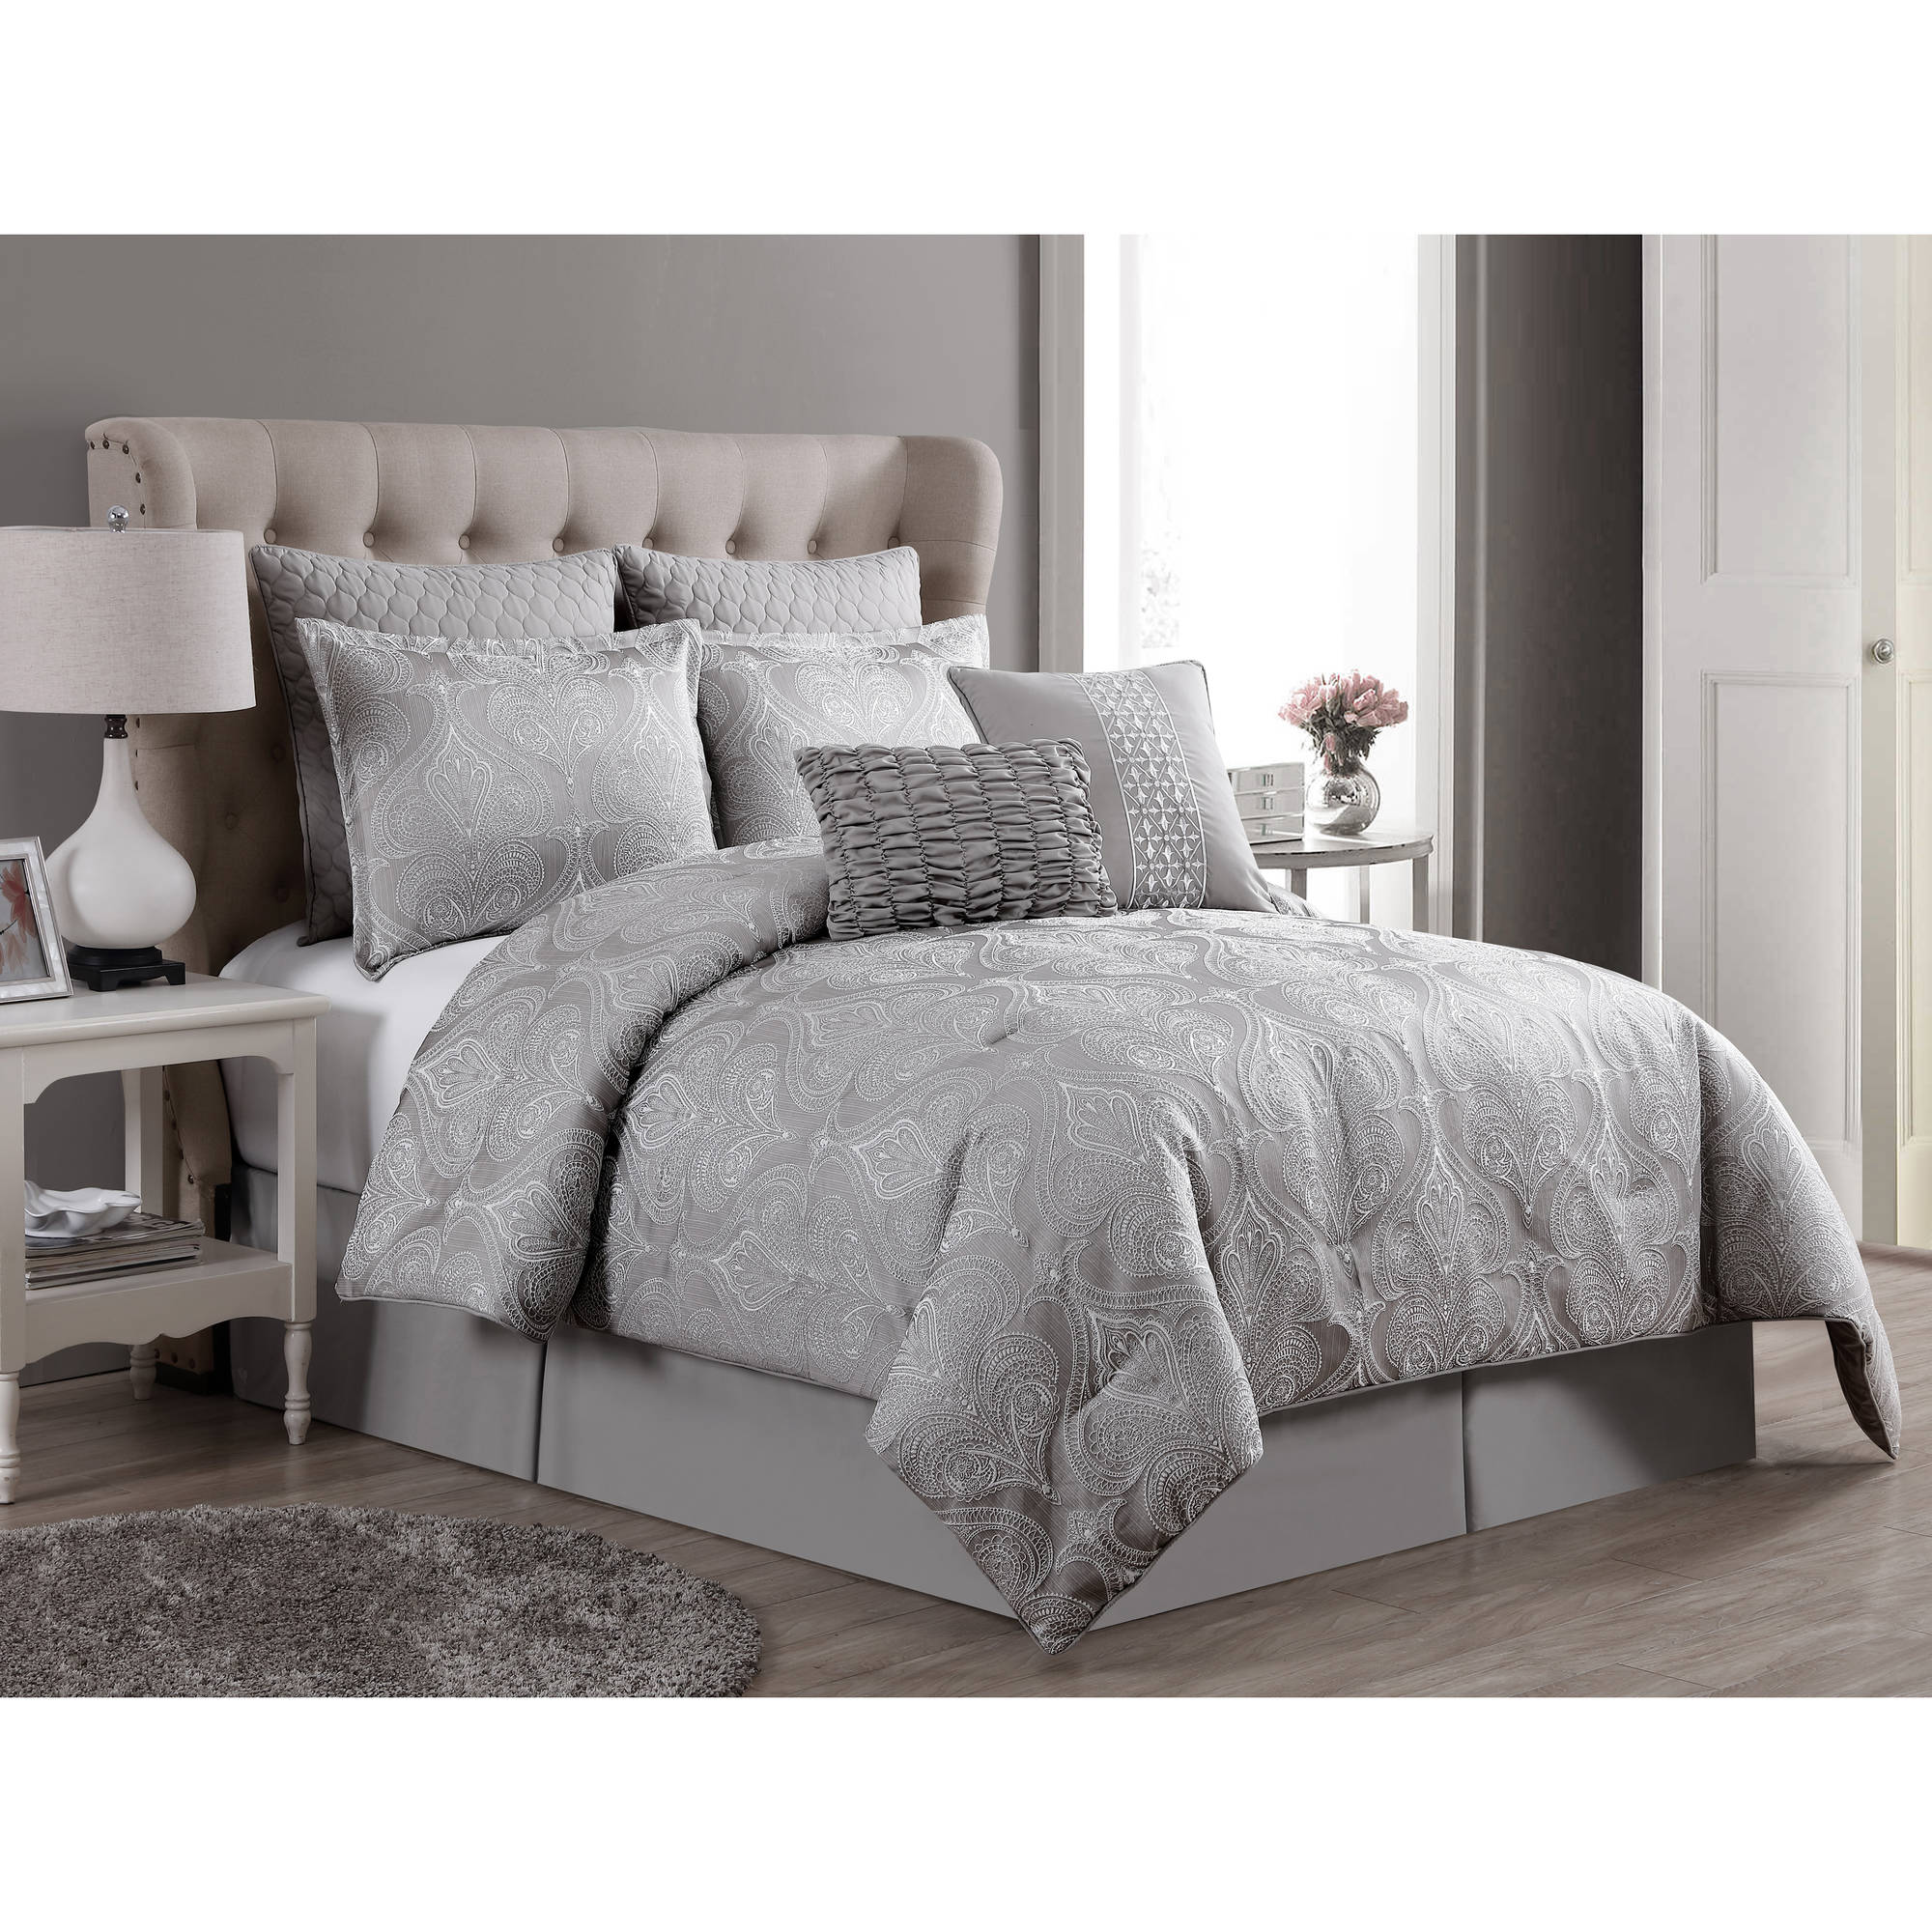 VCNY Rennes 8-Piece Two-Tone Embroidered Bedding Comforter Set, Euro Shams Included